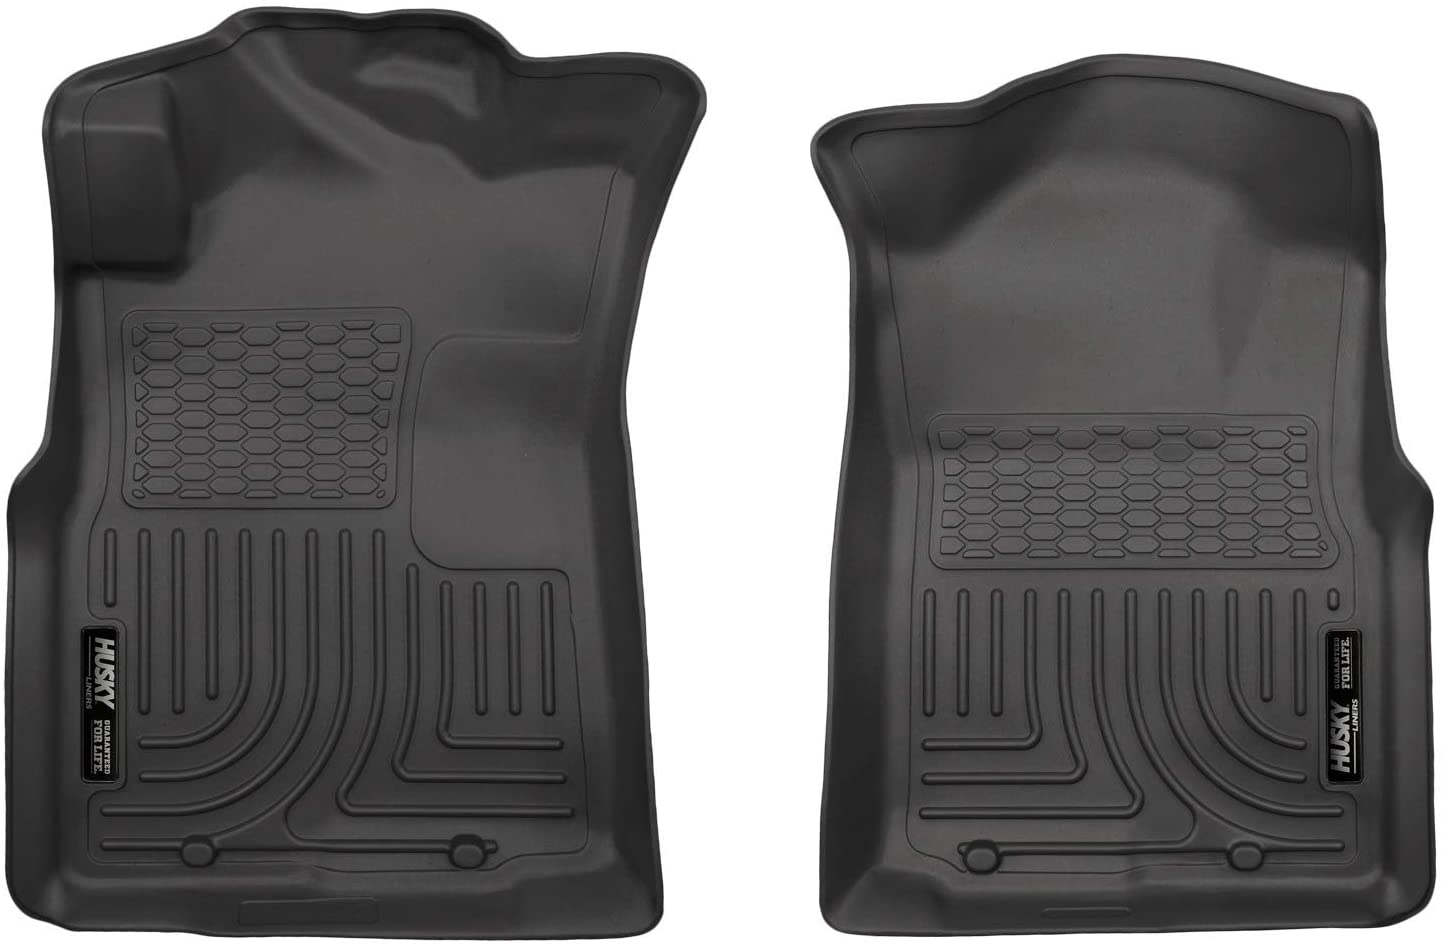 2000 2003 Chevrolet Malibu Black with Red Edging Driver 1999 GGBAILEY D4113A-S1A-BLK/_BR Custom Fit Automotive Carpet Floor Mats for 1997 1998 2001 Passenger /& Rear 2002